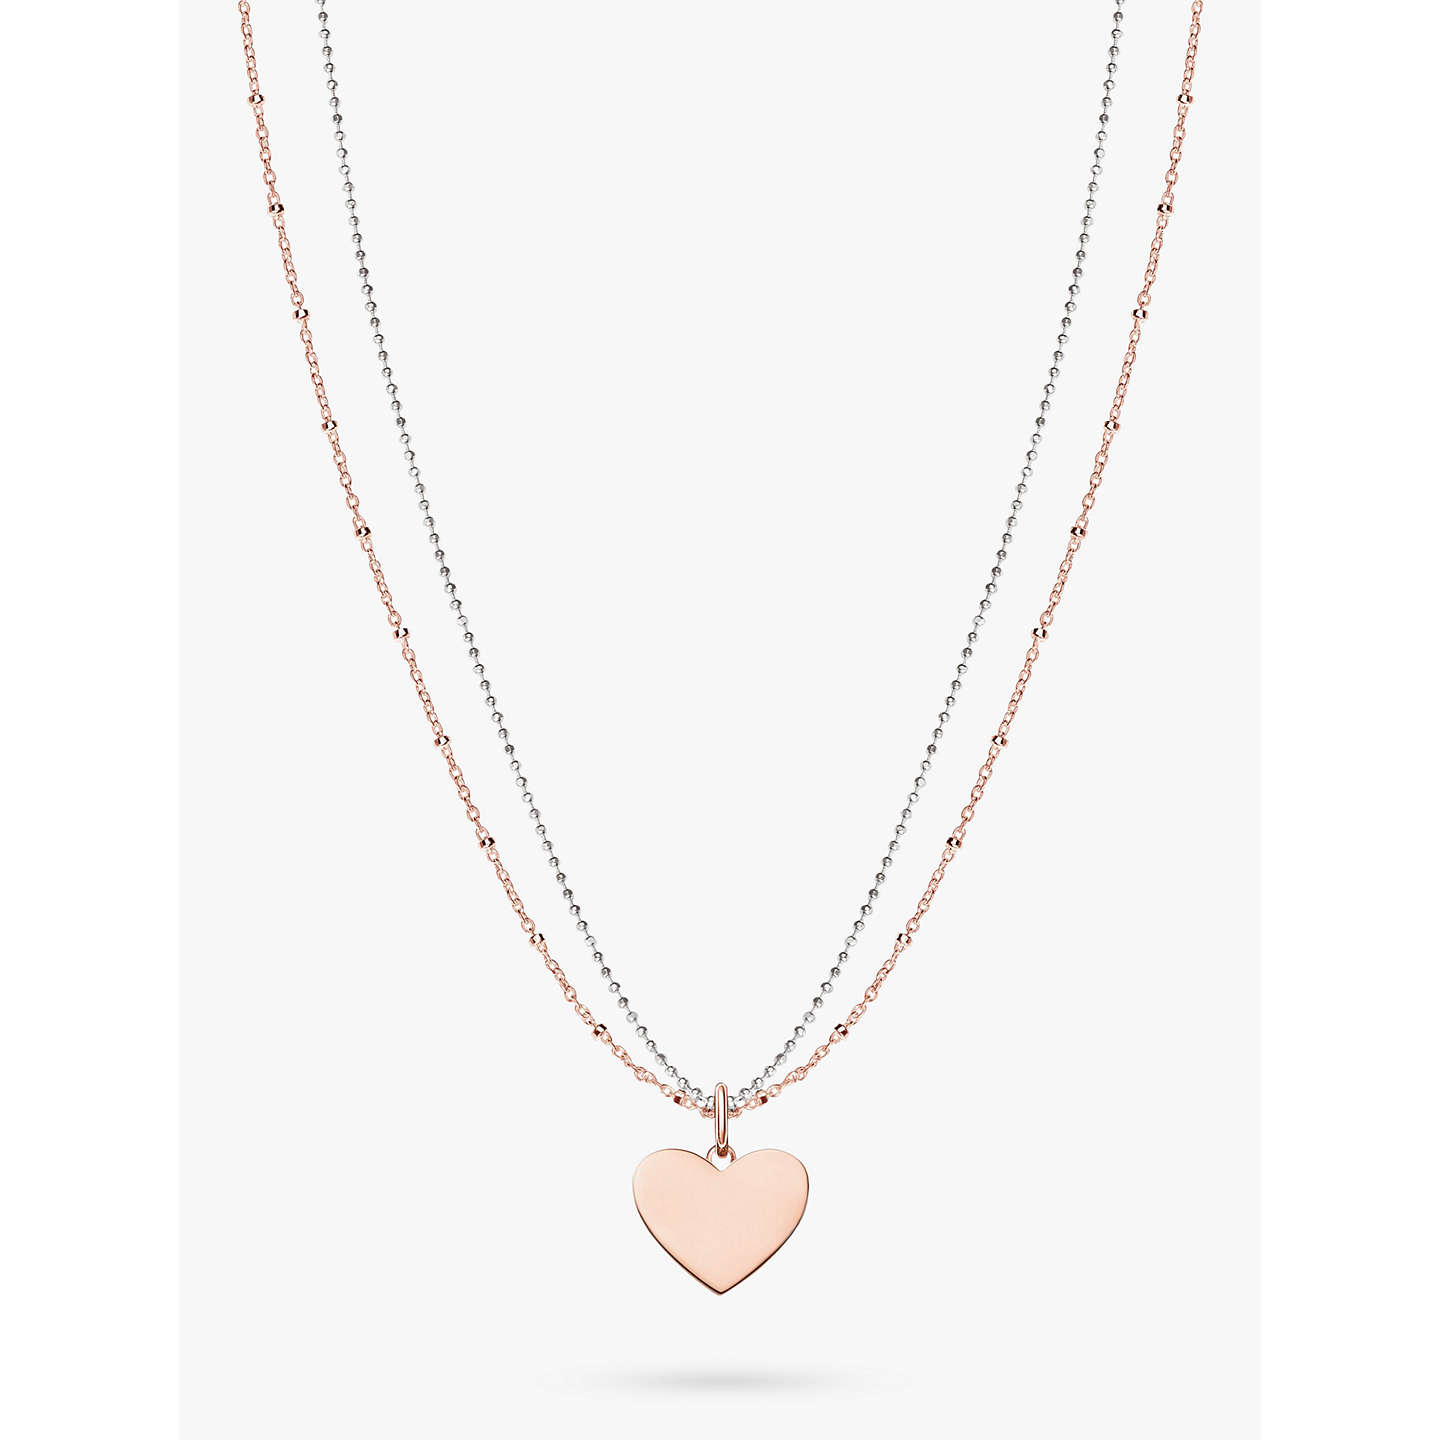 Thomas sabo love bridge heart pendant necklace at john lewis buythomas sabo love bridge heart pendant necklace rose goldsilver online at johnlewis aloadofball